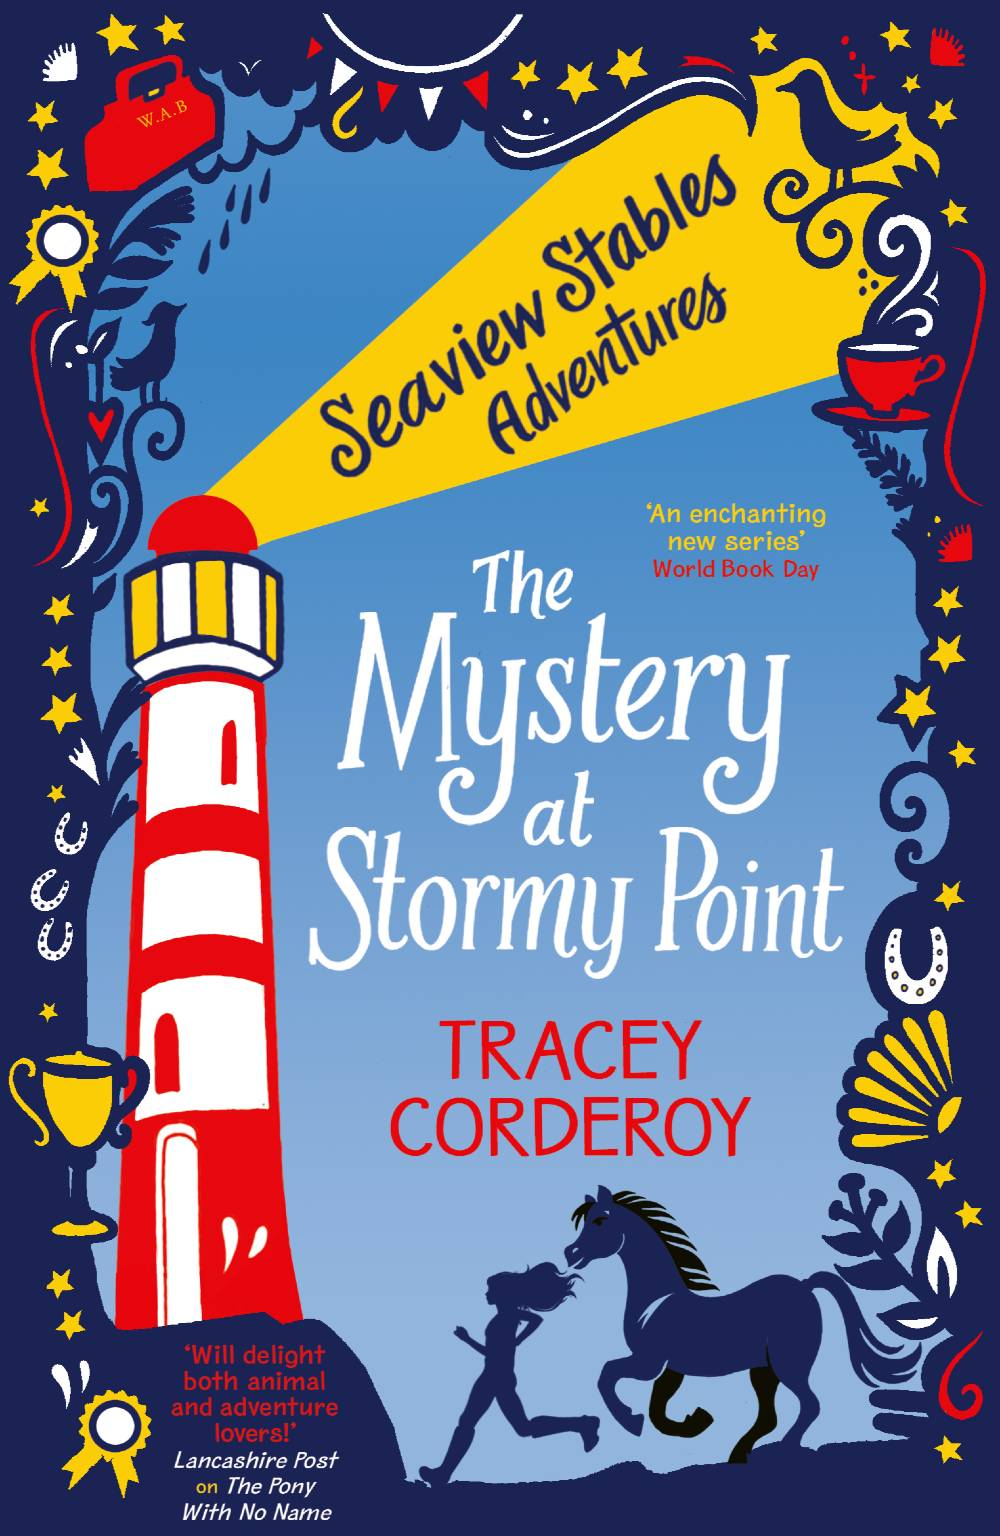 Children's Book Seaview Stables: The Mystery at Stormy Point by Tracey Corderoy